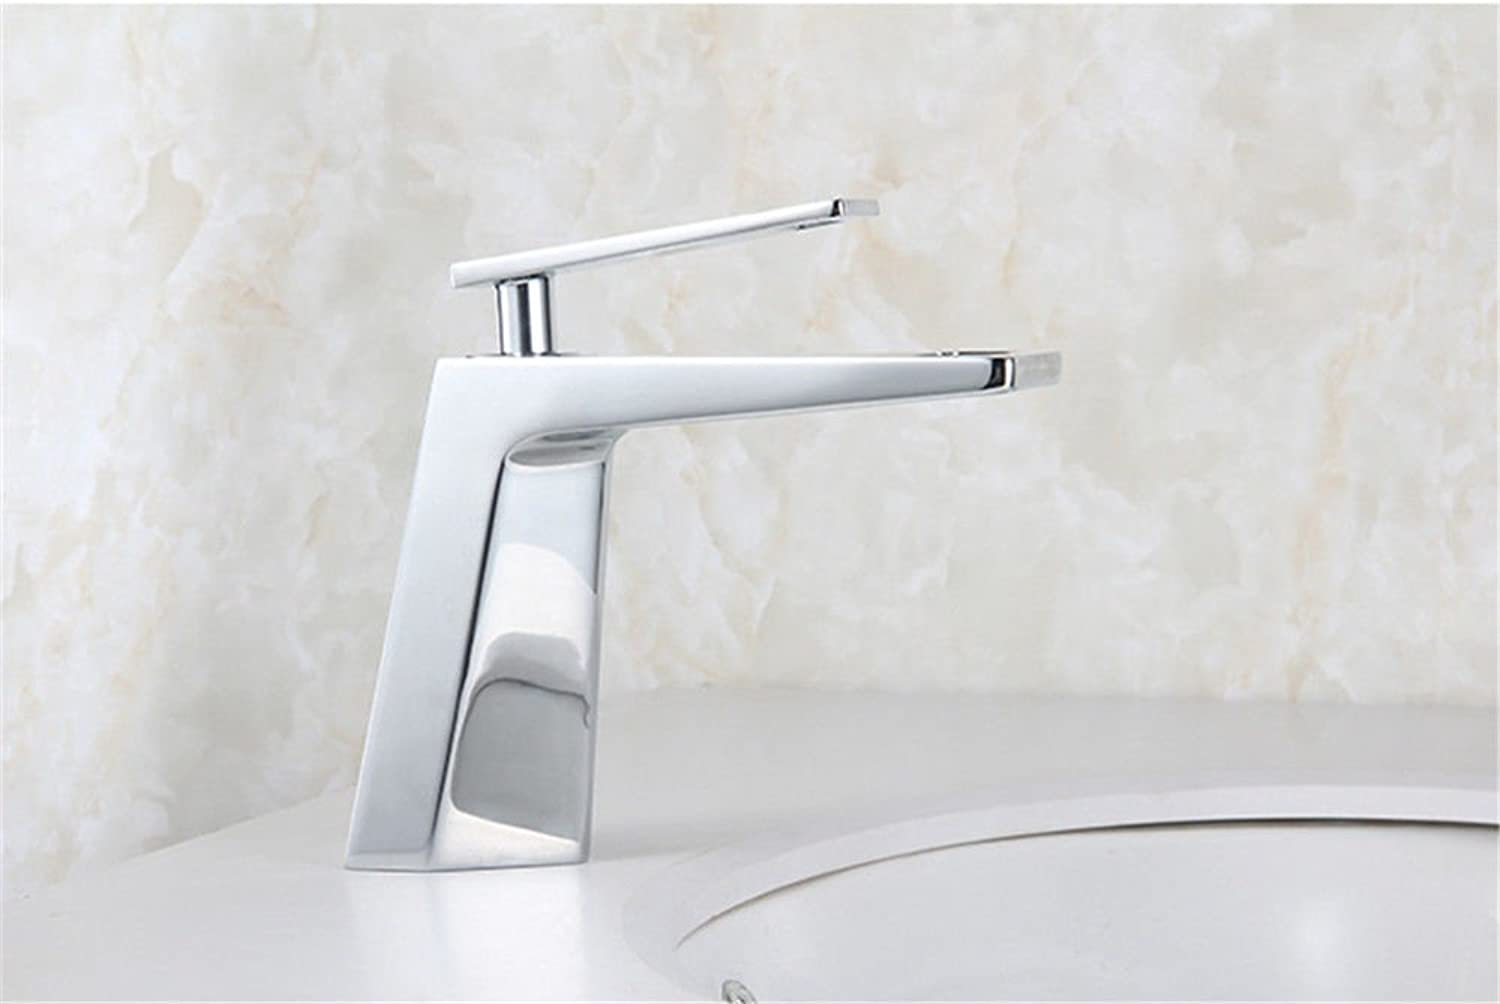 BDYJY ※ Bathroom Sink Faucets Hot & Cold Copper Single Lever Kitchen Sink Faucet Kitchen Faucets Kitchen Faucets